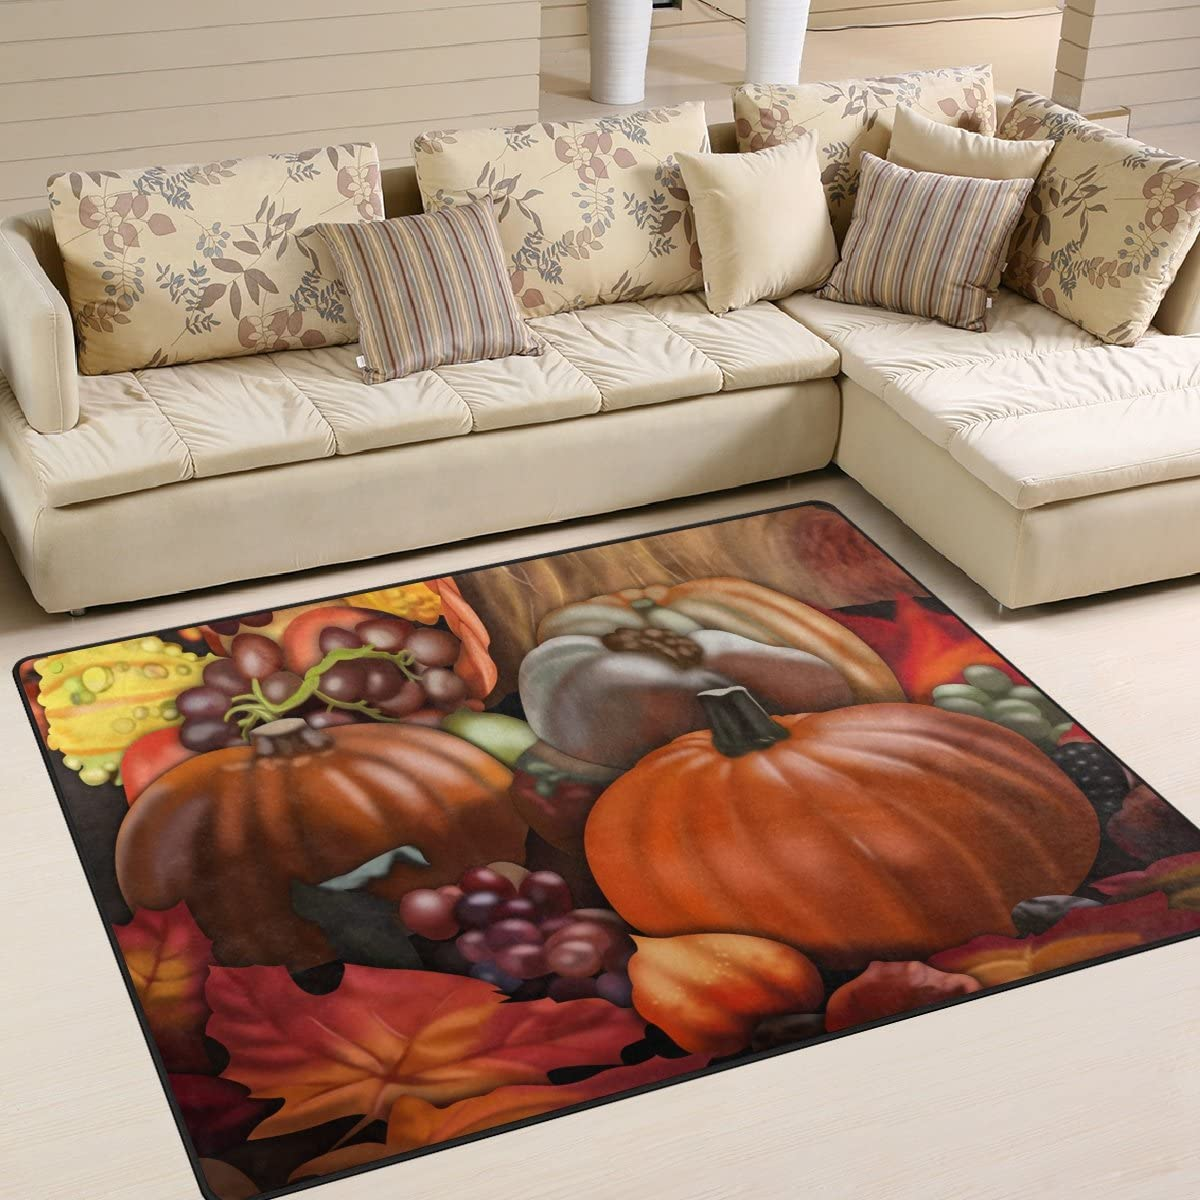 Amazon Com Naanle Thanksgiving Holiday Area Rug 5 X7 Thanksgiving Harvest Pumpkin Polyester Area Rug Mat For Living Dining Dorm Room Bedroom Home Decorative Kitchen Dining